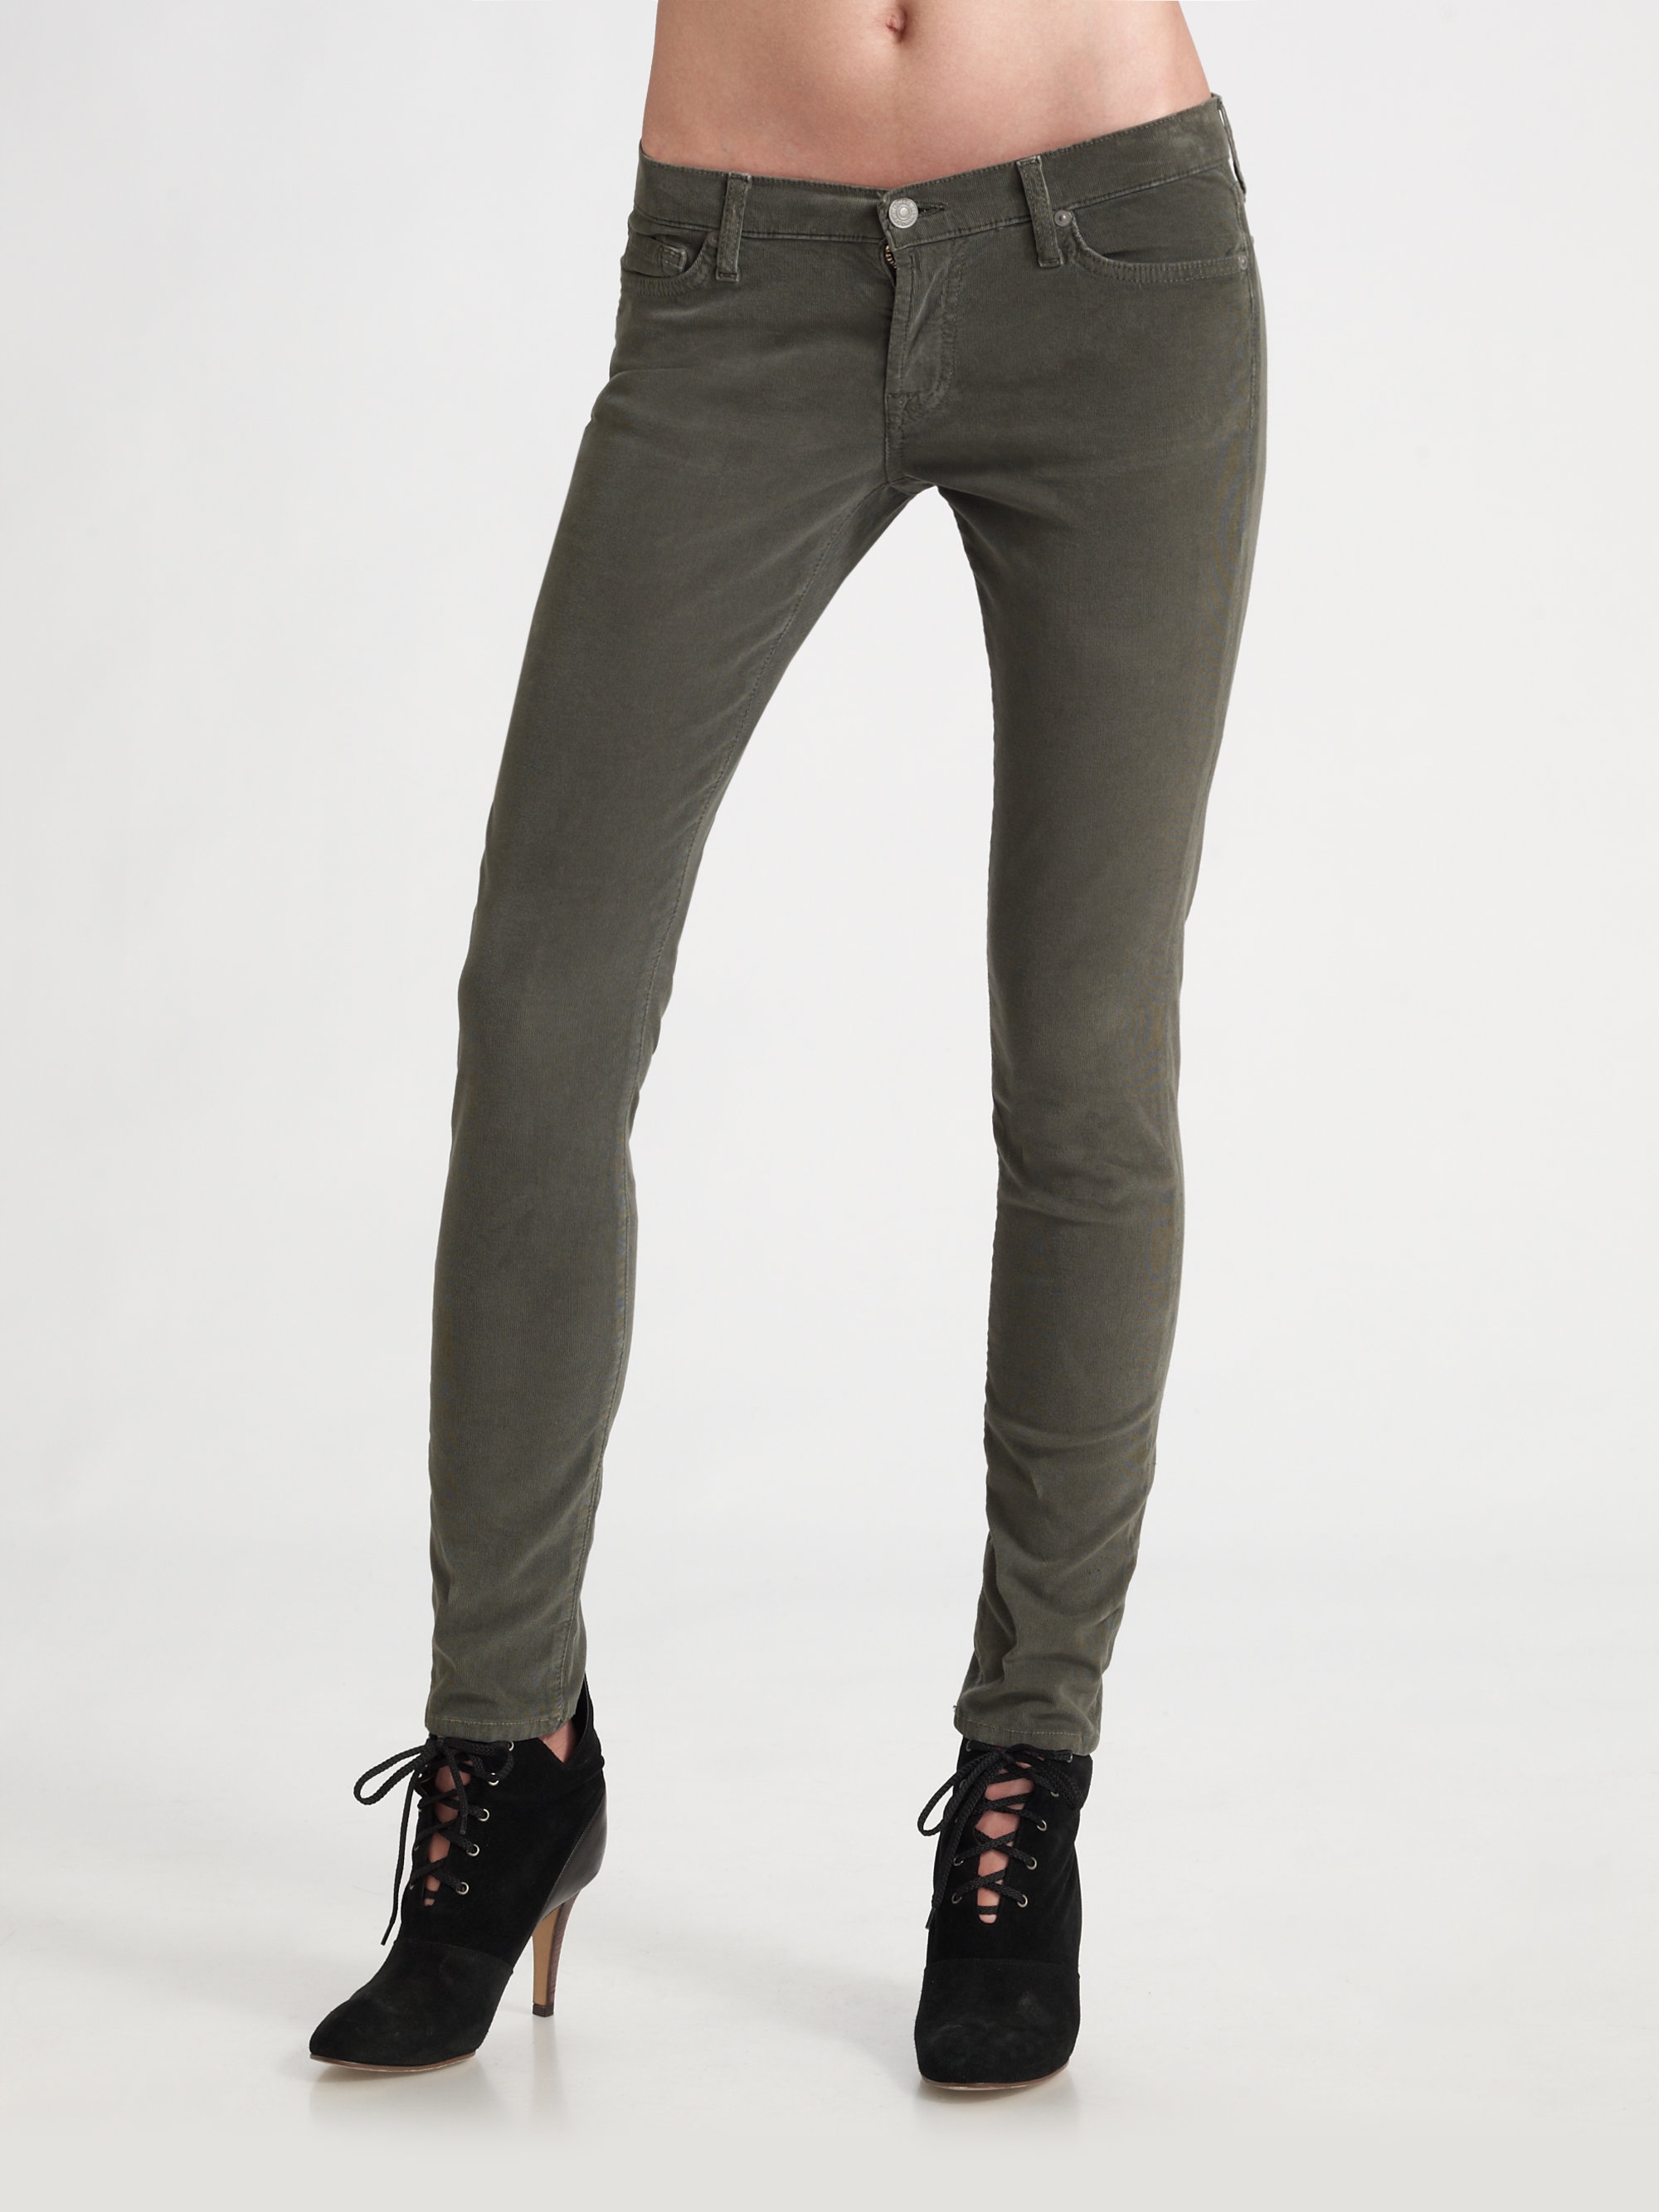 7 for all mankind Skinny Corduroy Pants in Black | Lyst